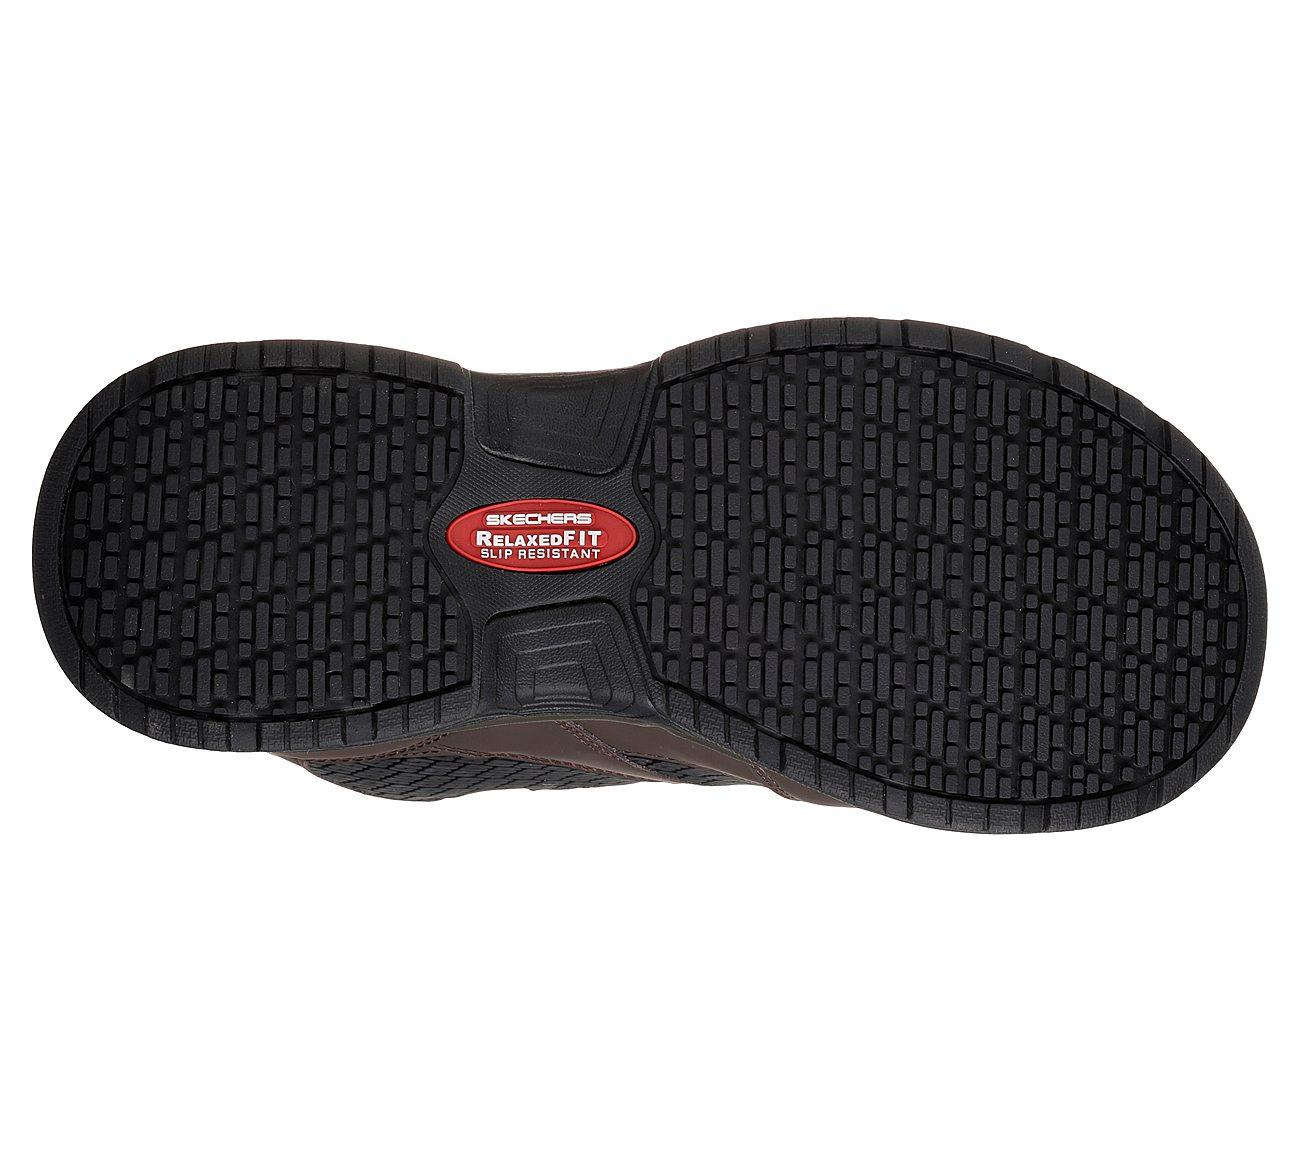 93c96df82135 Buy SKECHERS Work Relaxed Fit  Conroe - Centerton Comp Toe Work ...